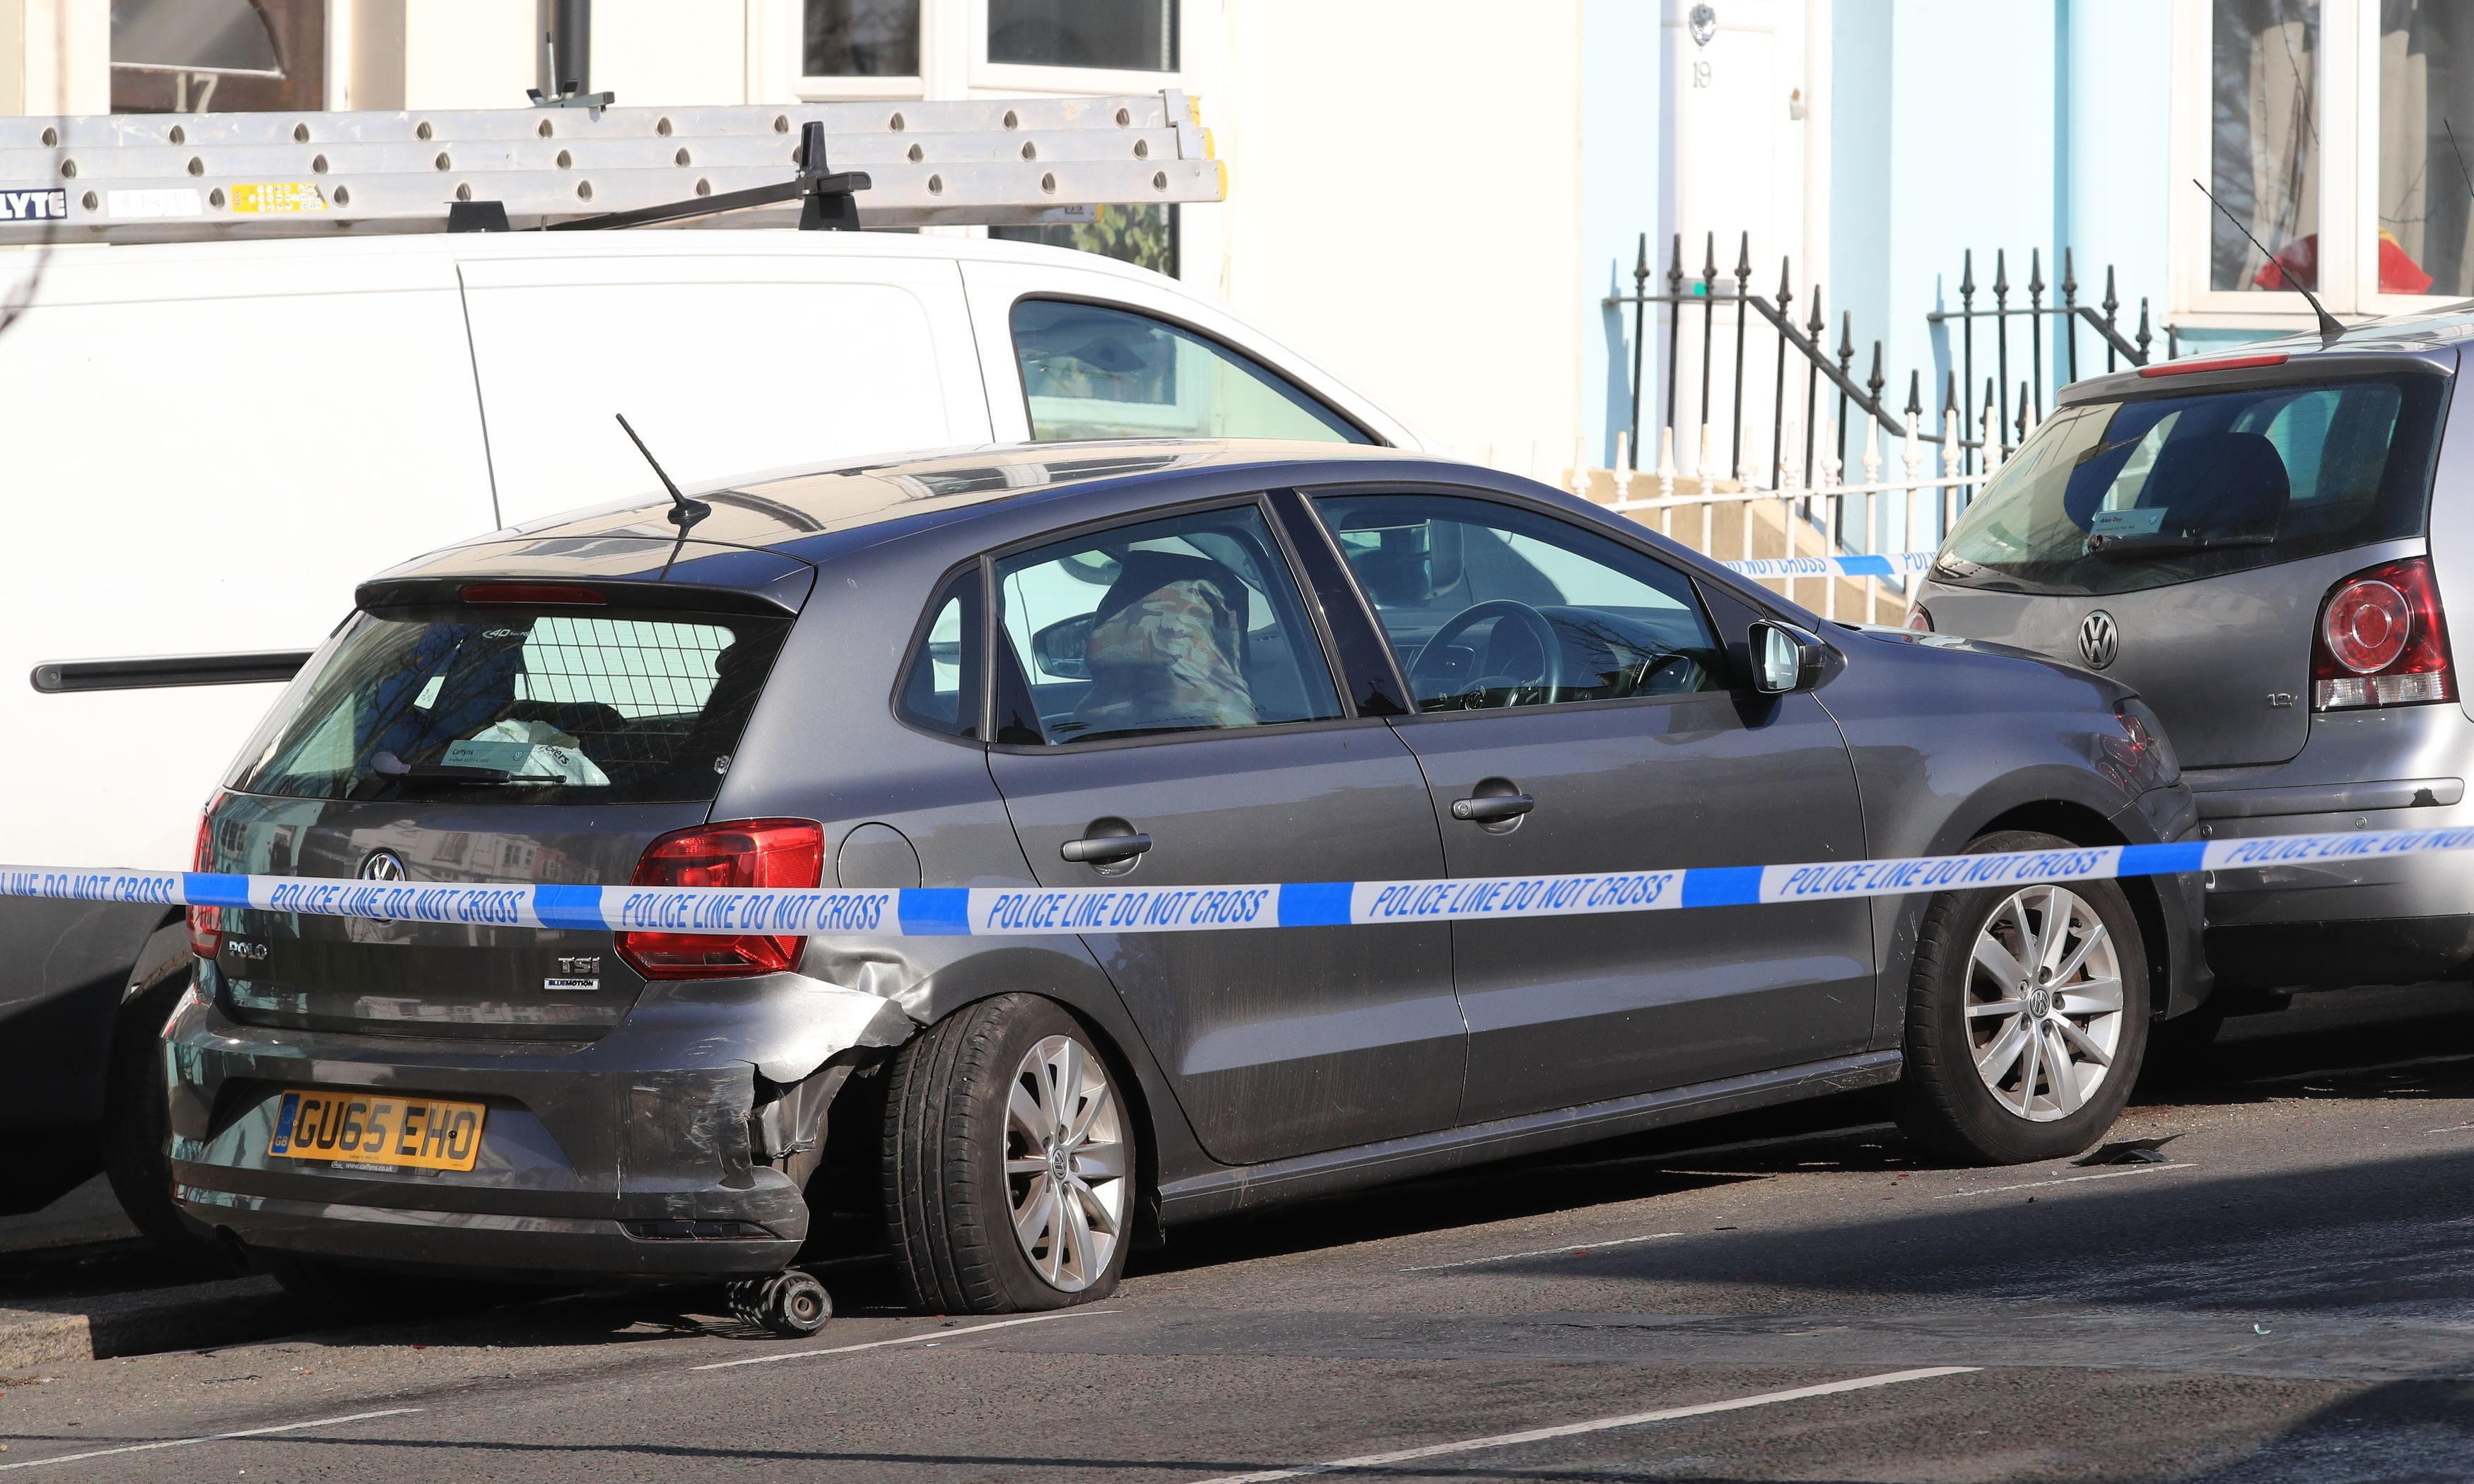 Man held over death of Islamist fighters' brother in Brighton